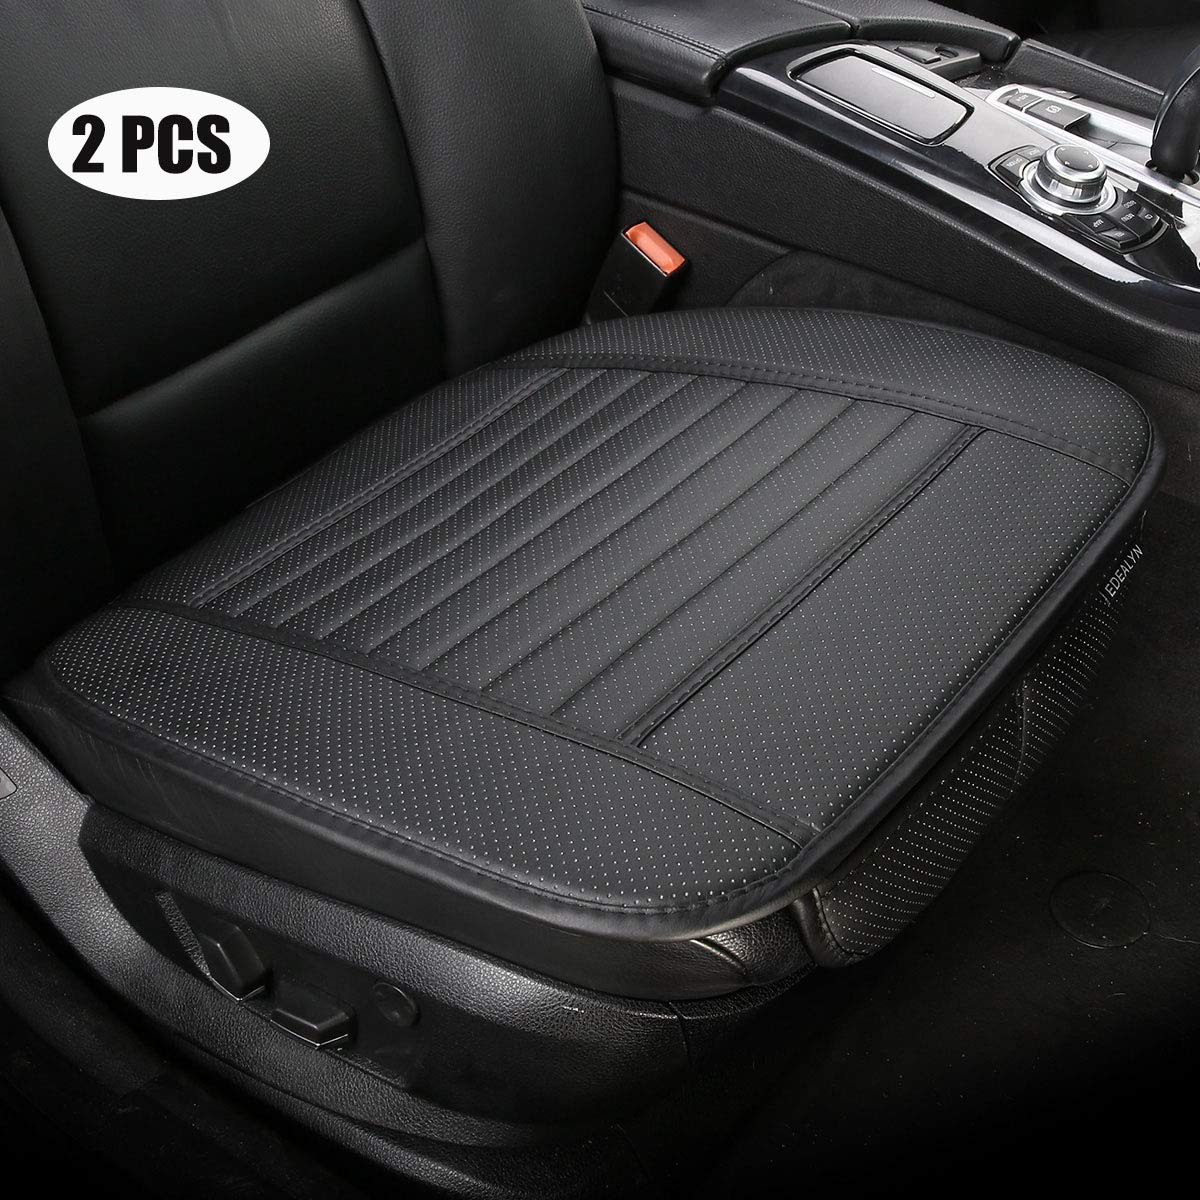 Beige-A 2pcs PU Leather Universal car seat Covers car seat Protector for Car Driver and Passenger seat Bottom EDEALYN Car Seat Cushions